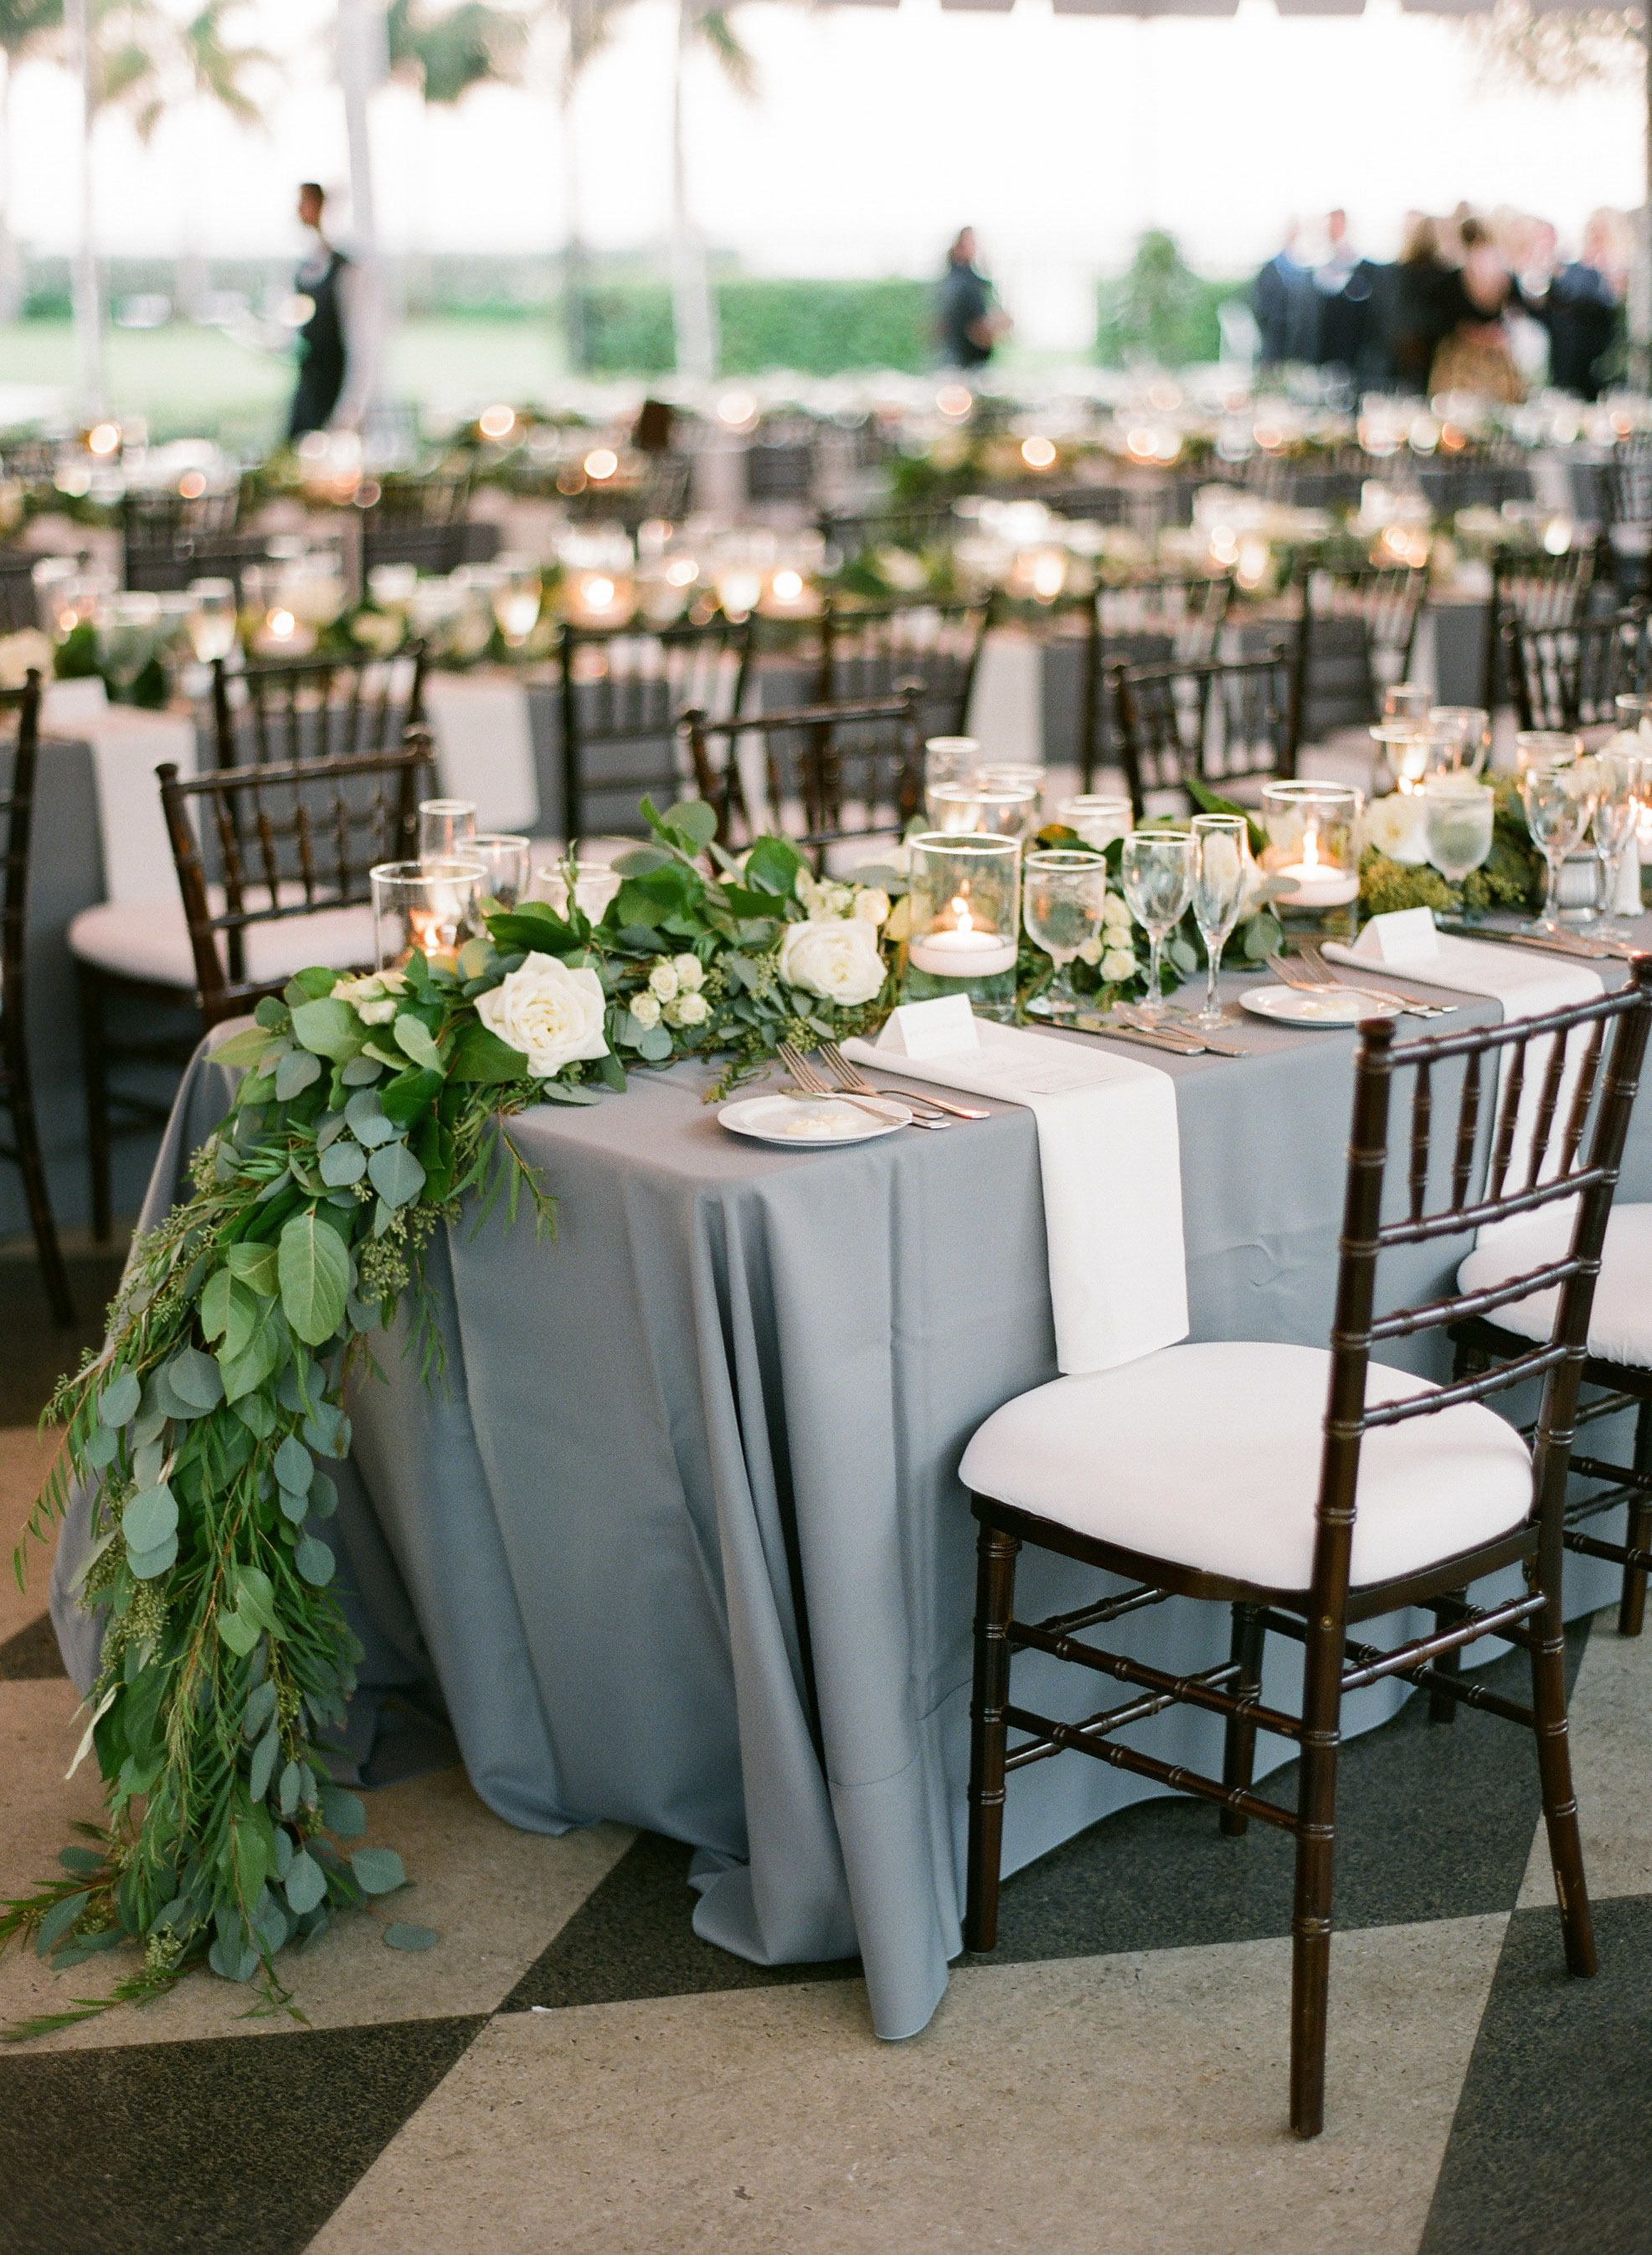 1000+ images about COLOR :: Grey, Pewter on Pinterest ... |Wedding Grey Table Linens